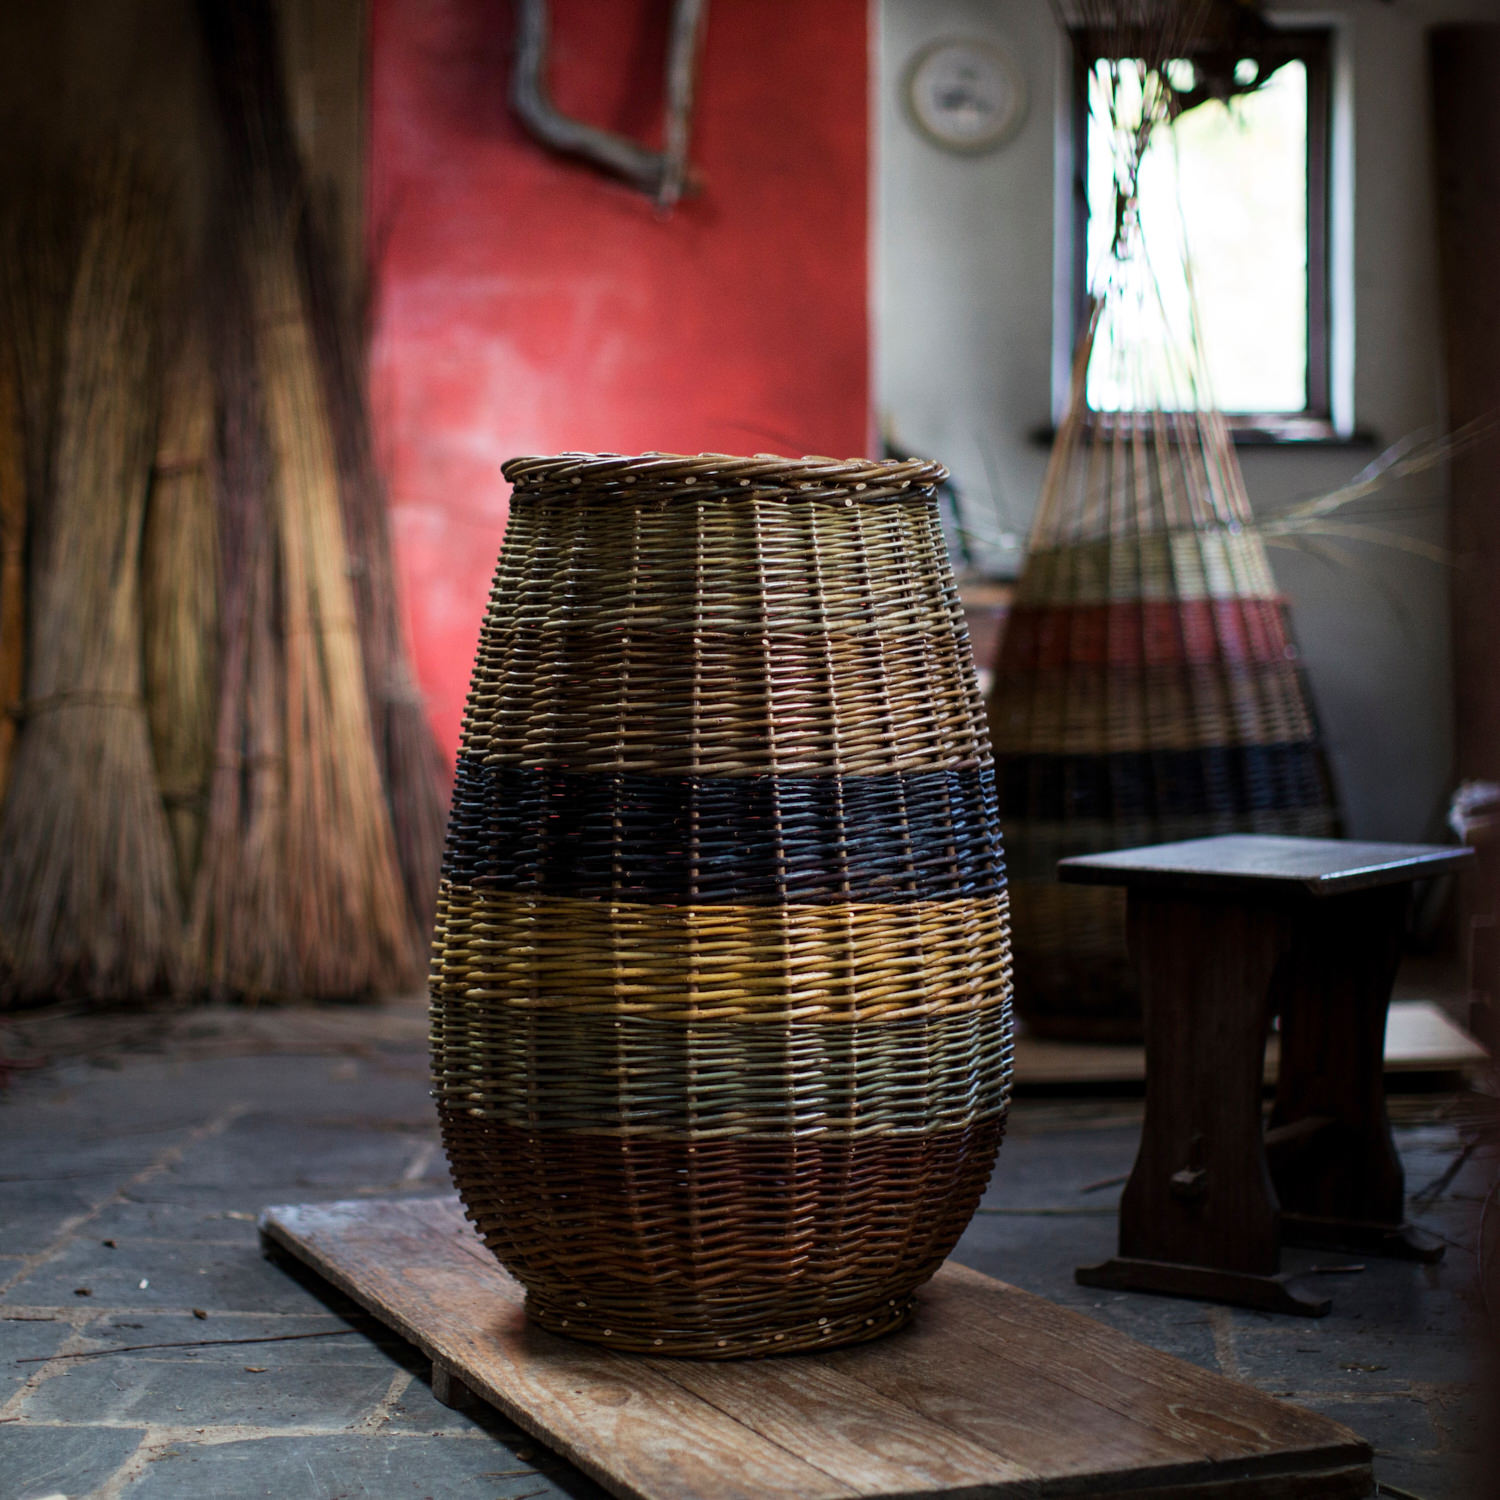 Design Island_daa_Basketry_Joe Hogan Baskets_Joe Hogan_basket_1_PR.jpg